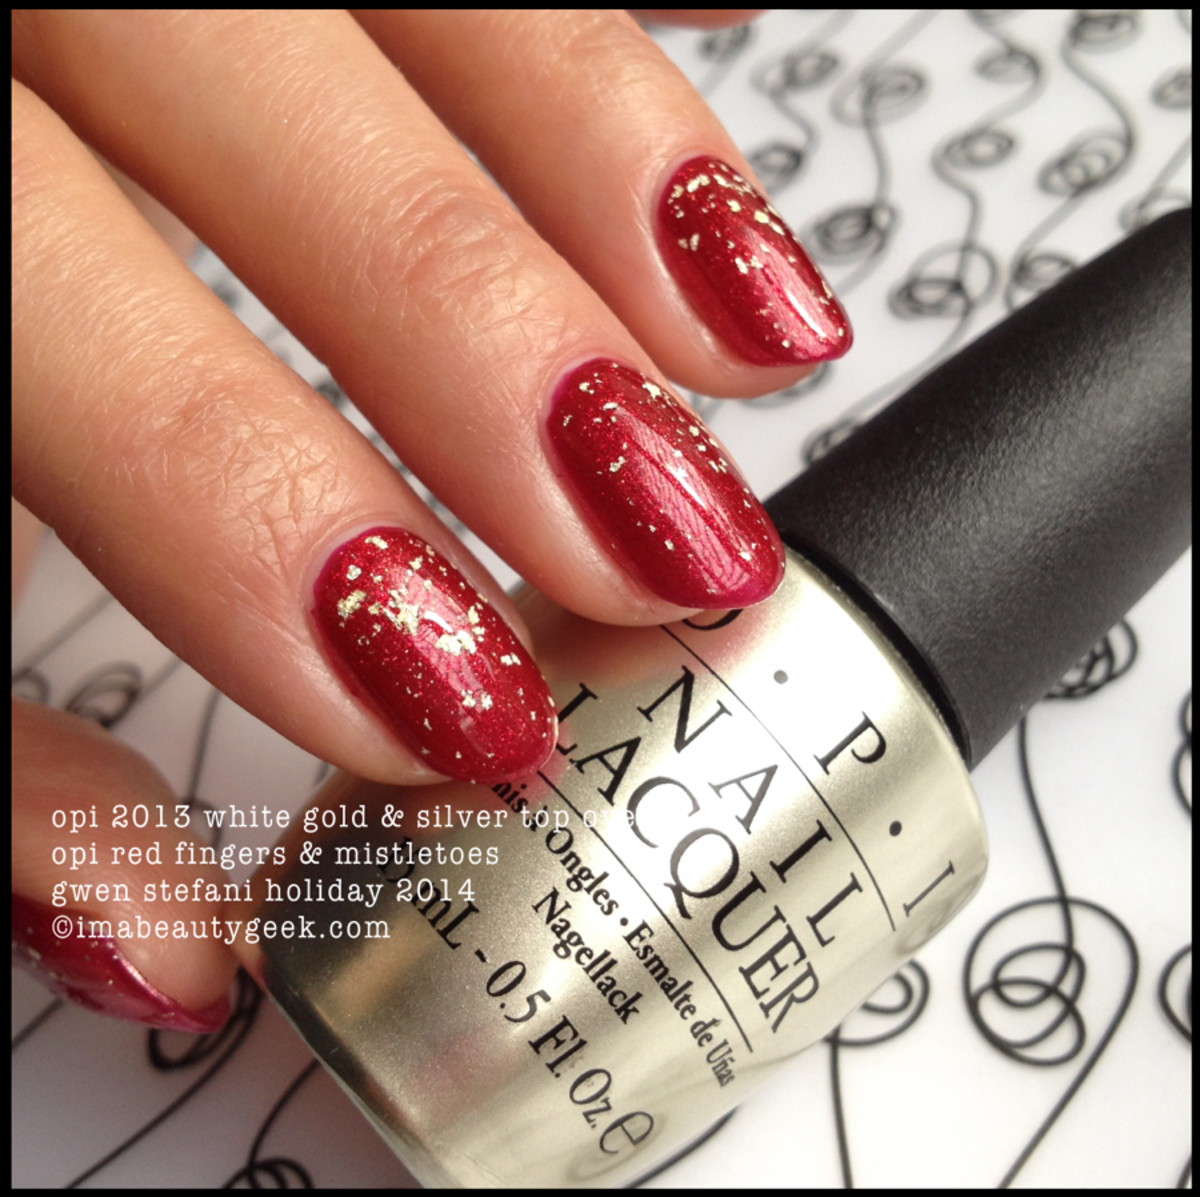 OPI Red Fingers and Mistletoes Gwen Stefani Holiday 2014 and OPI 2013 white gold & silver top coat